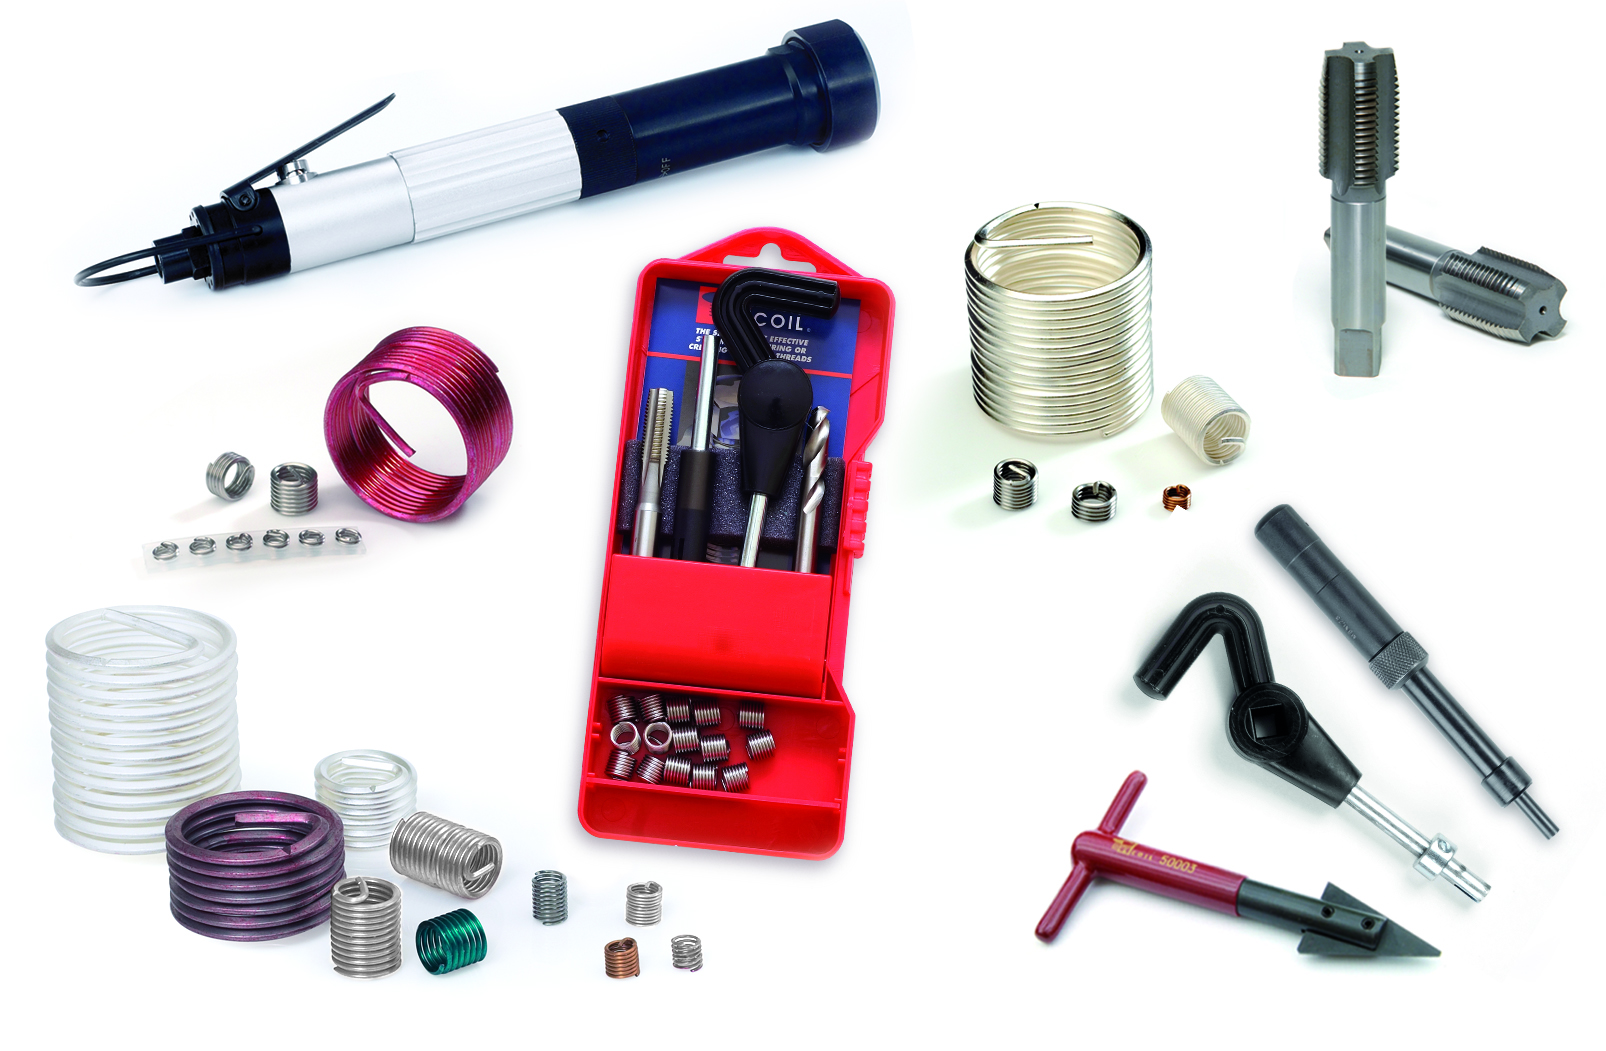 A wide range of wire thread inserts, tangless inserts, installation tooling and thread repair kits: